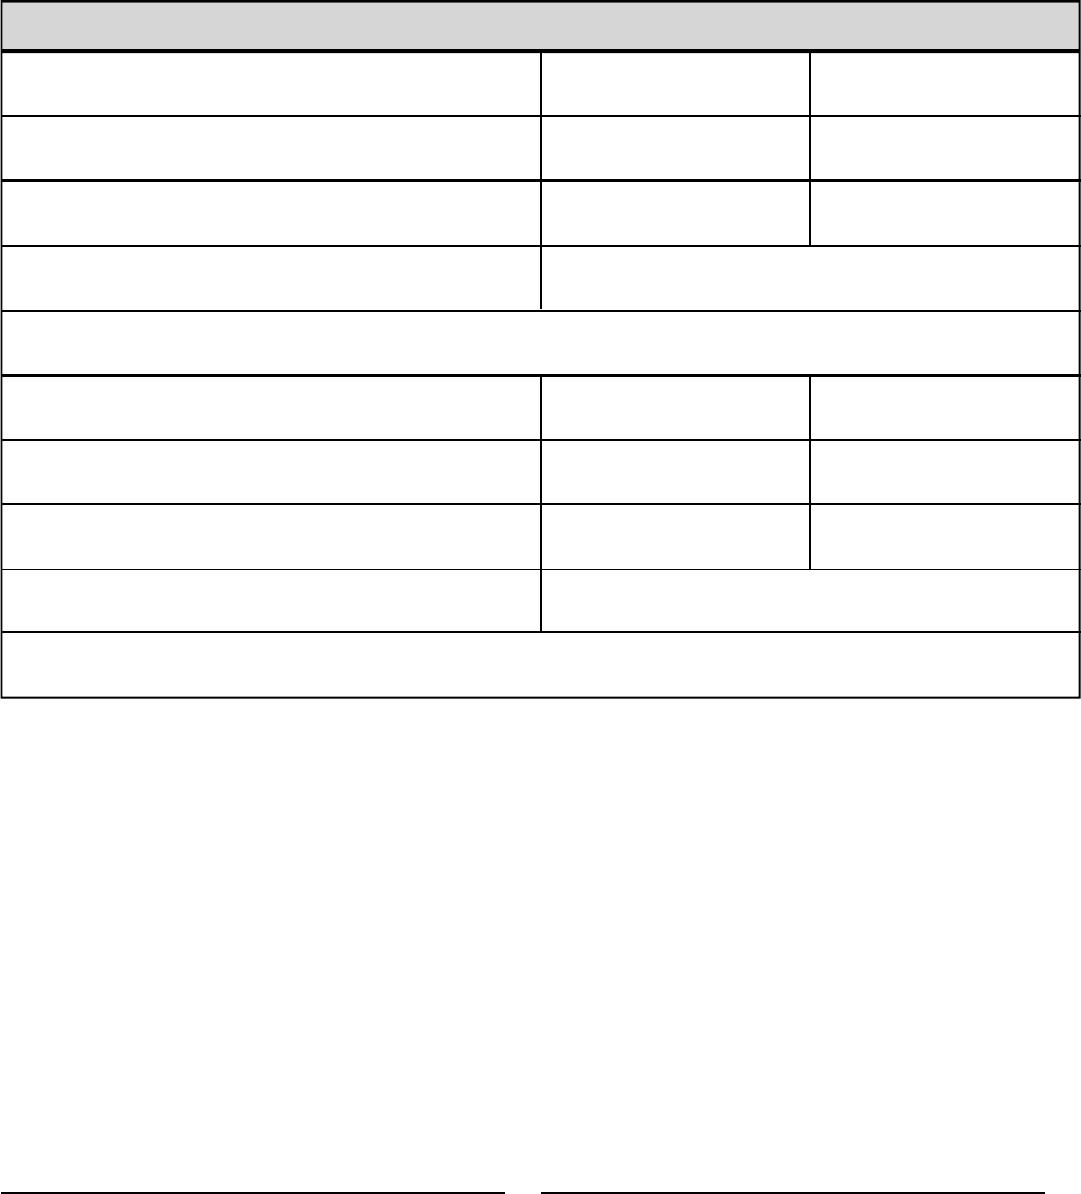 Free Printable Sears Job Application Form Page 2